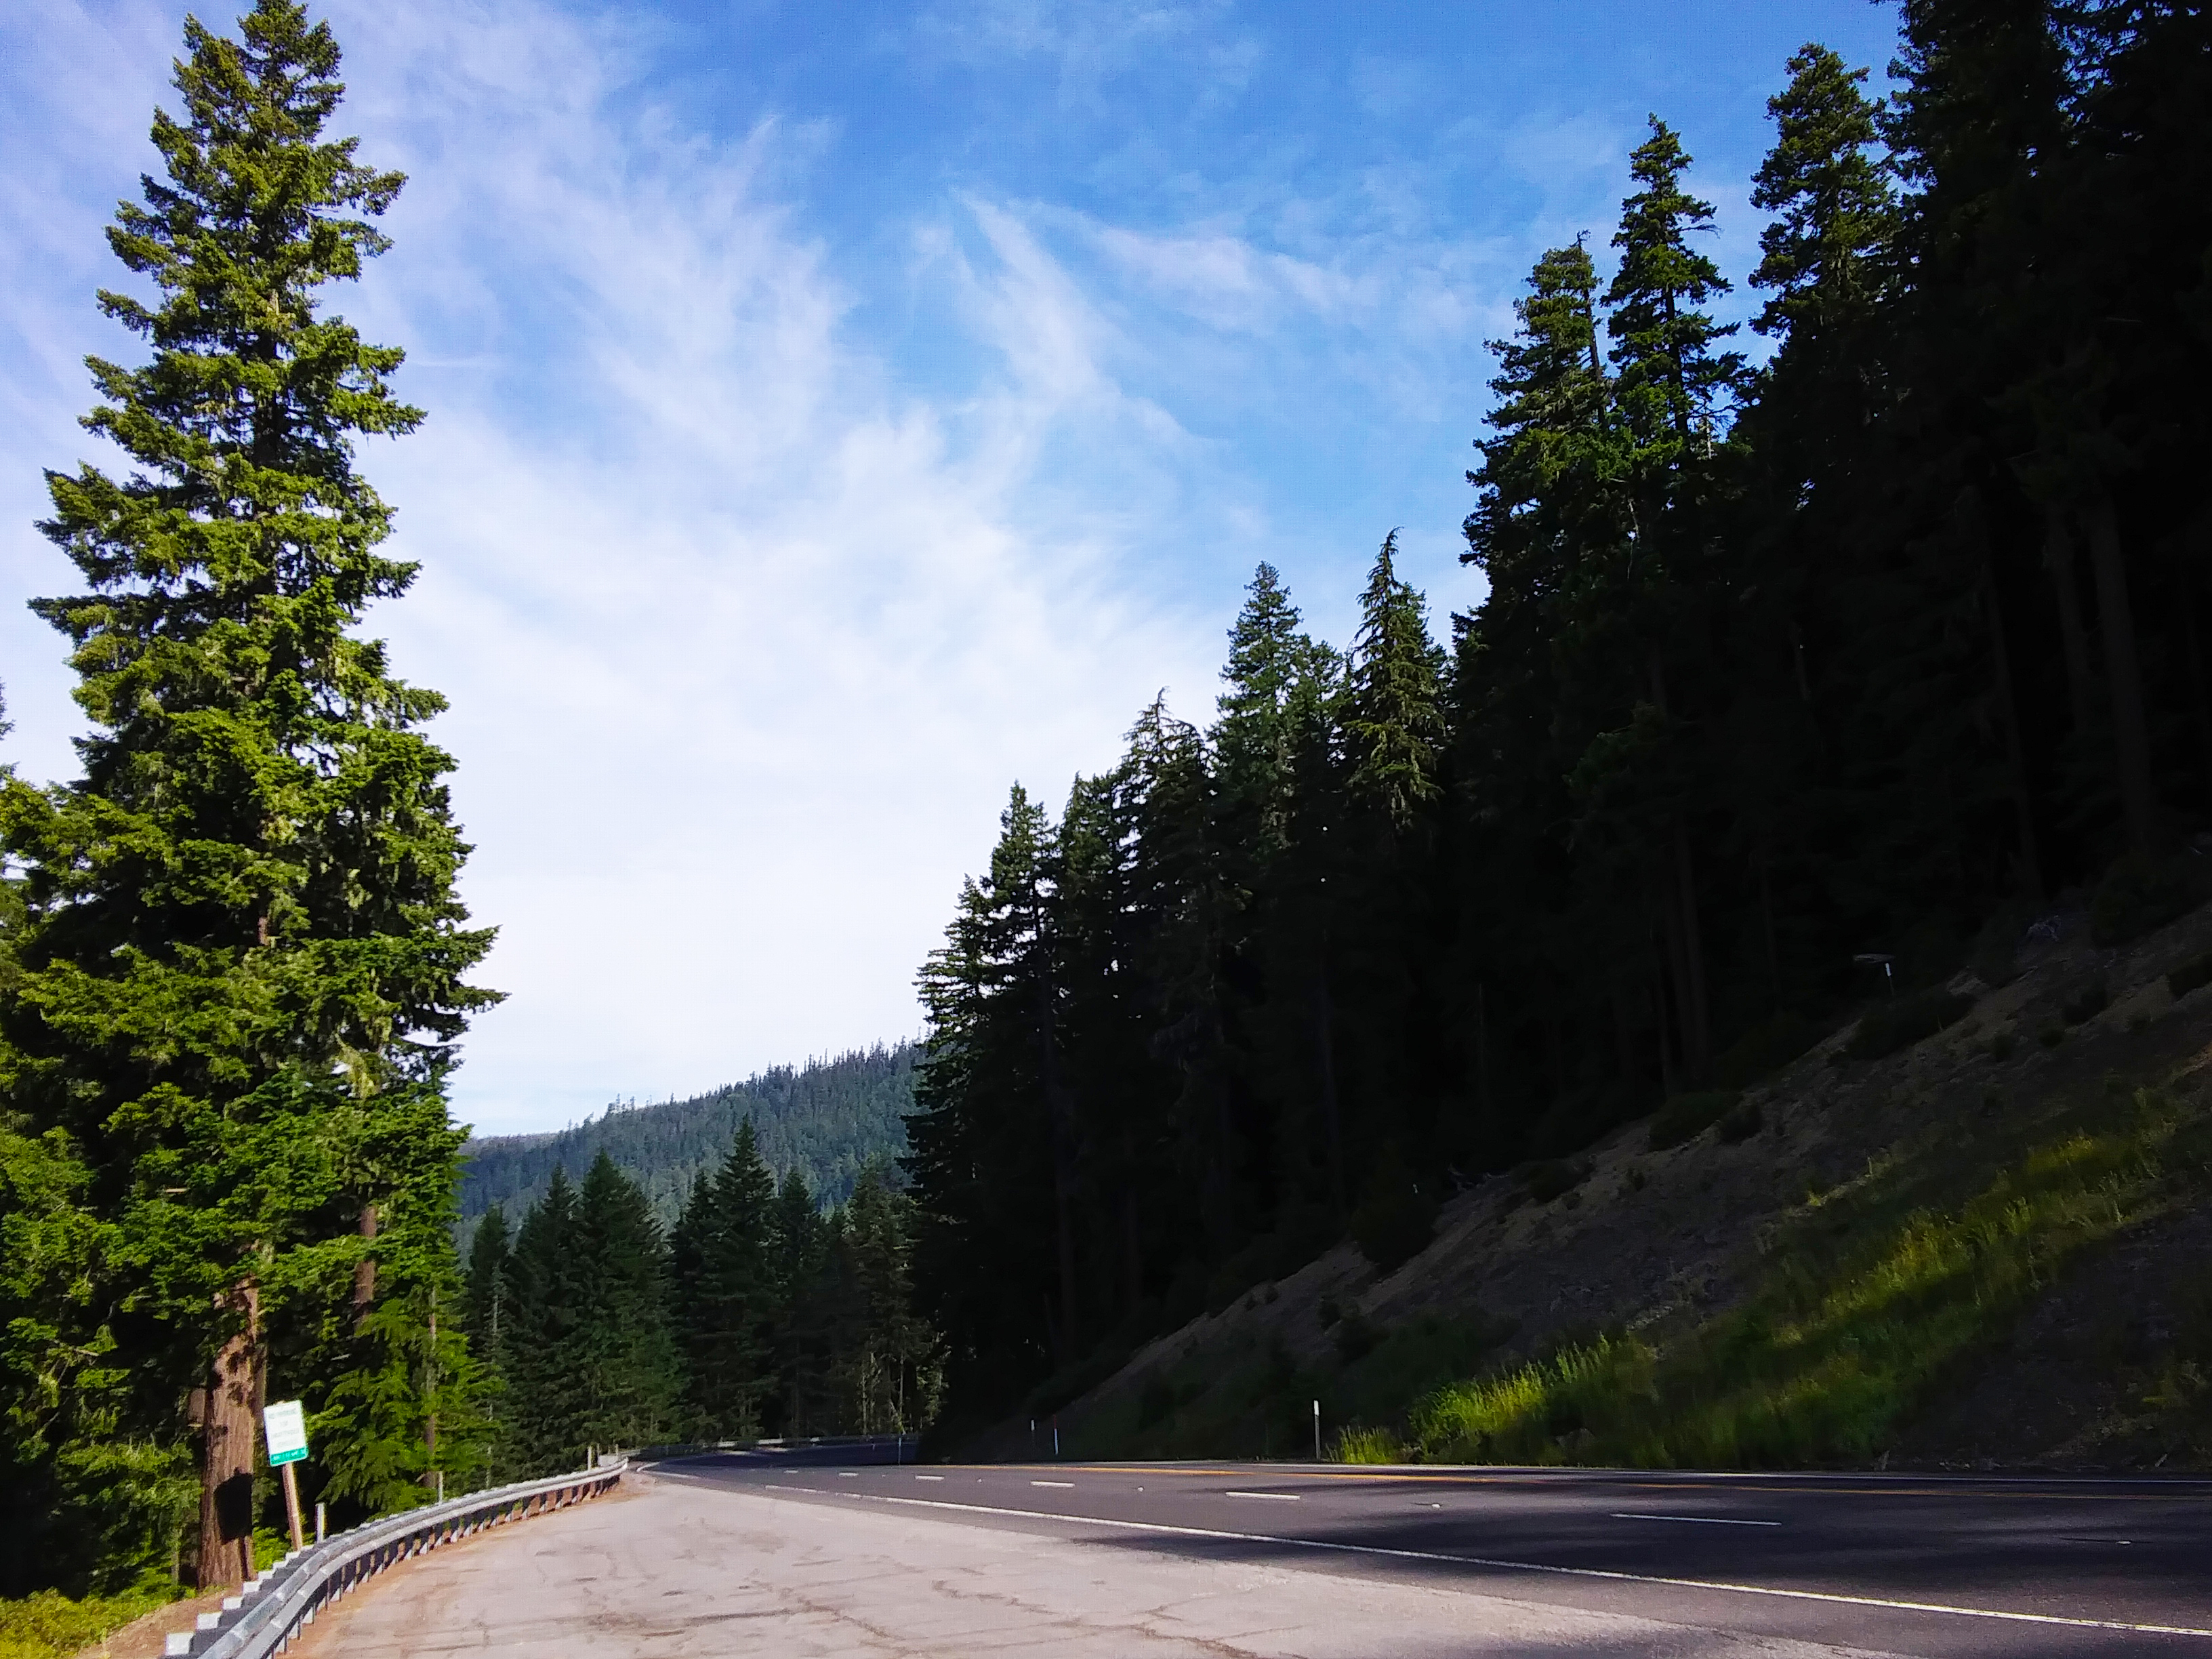 Road Trippin Through Oregon